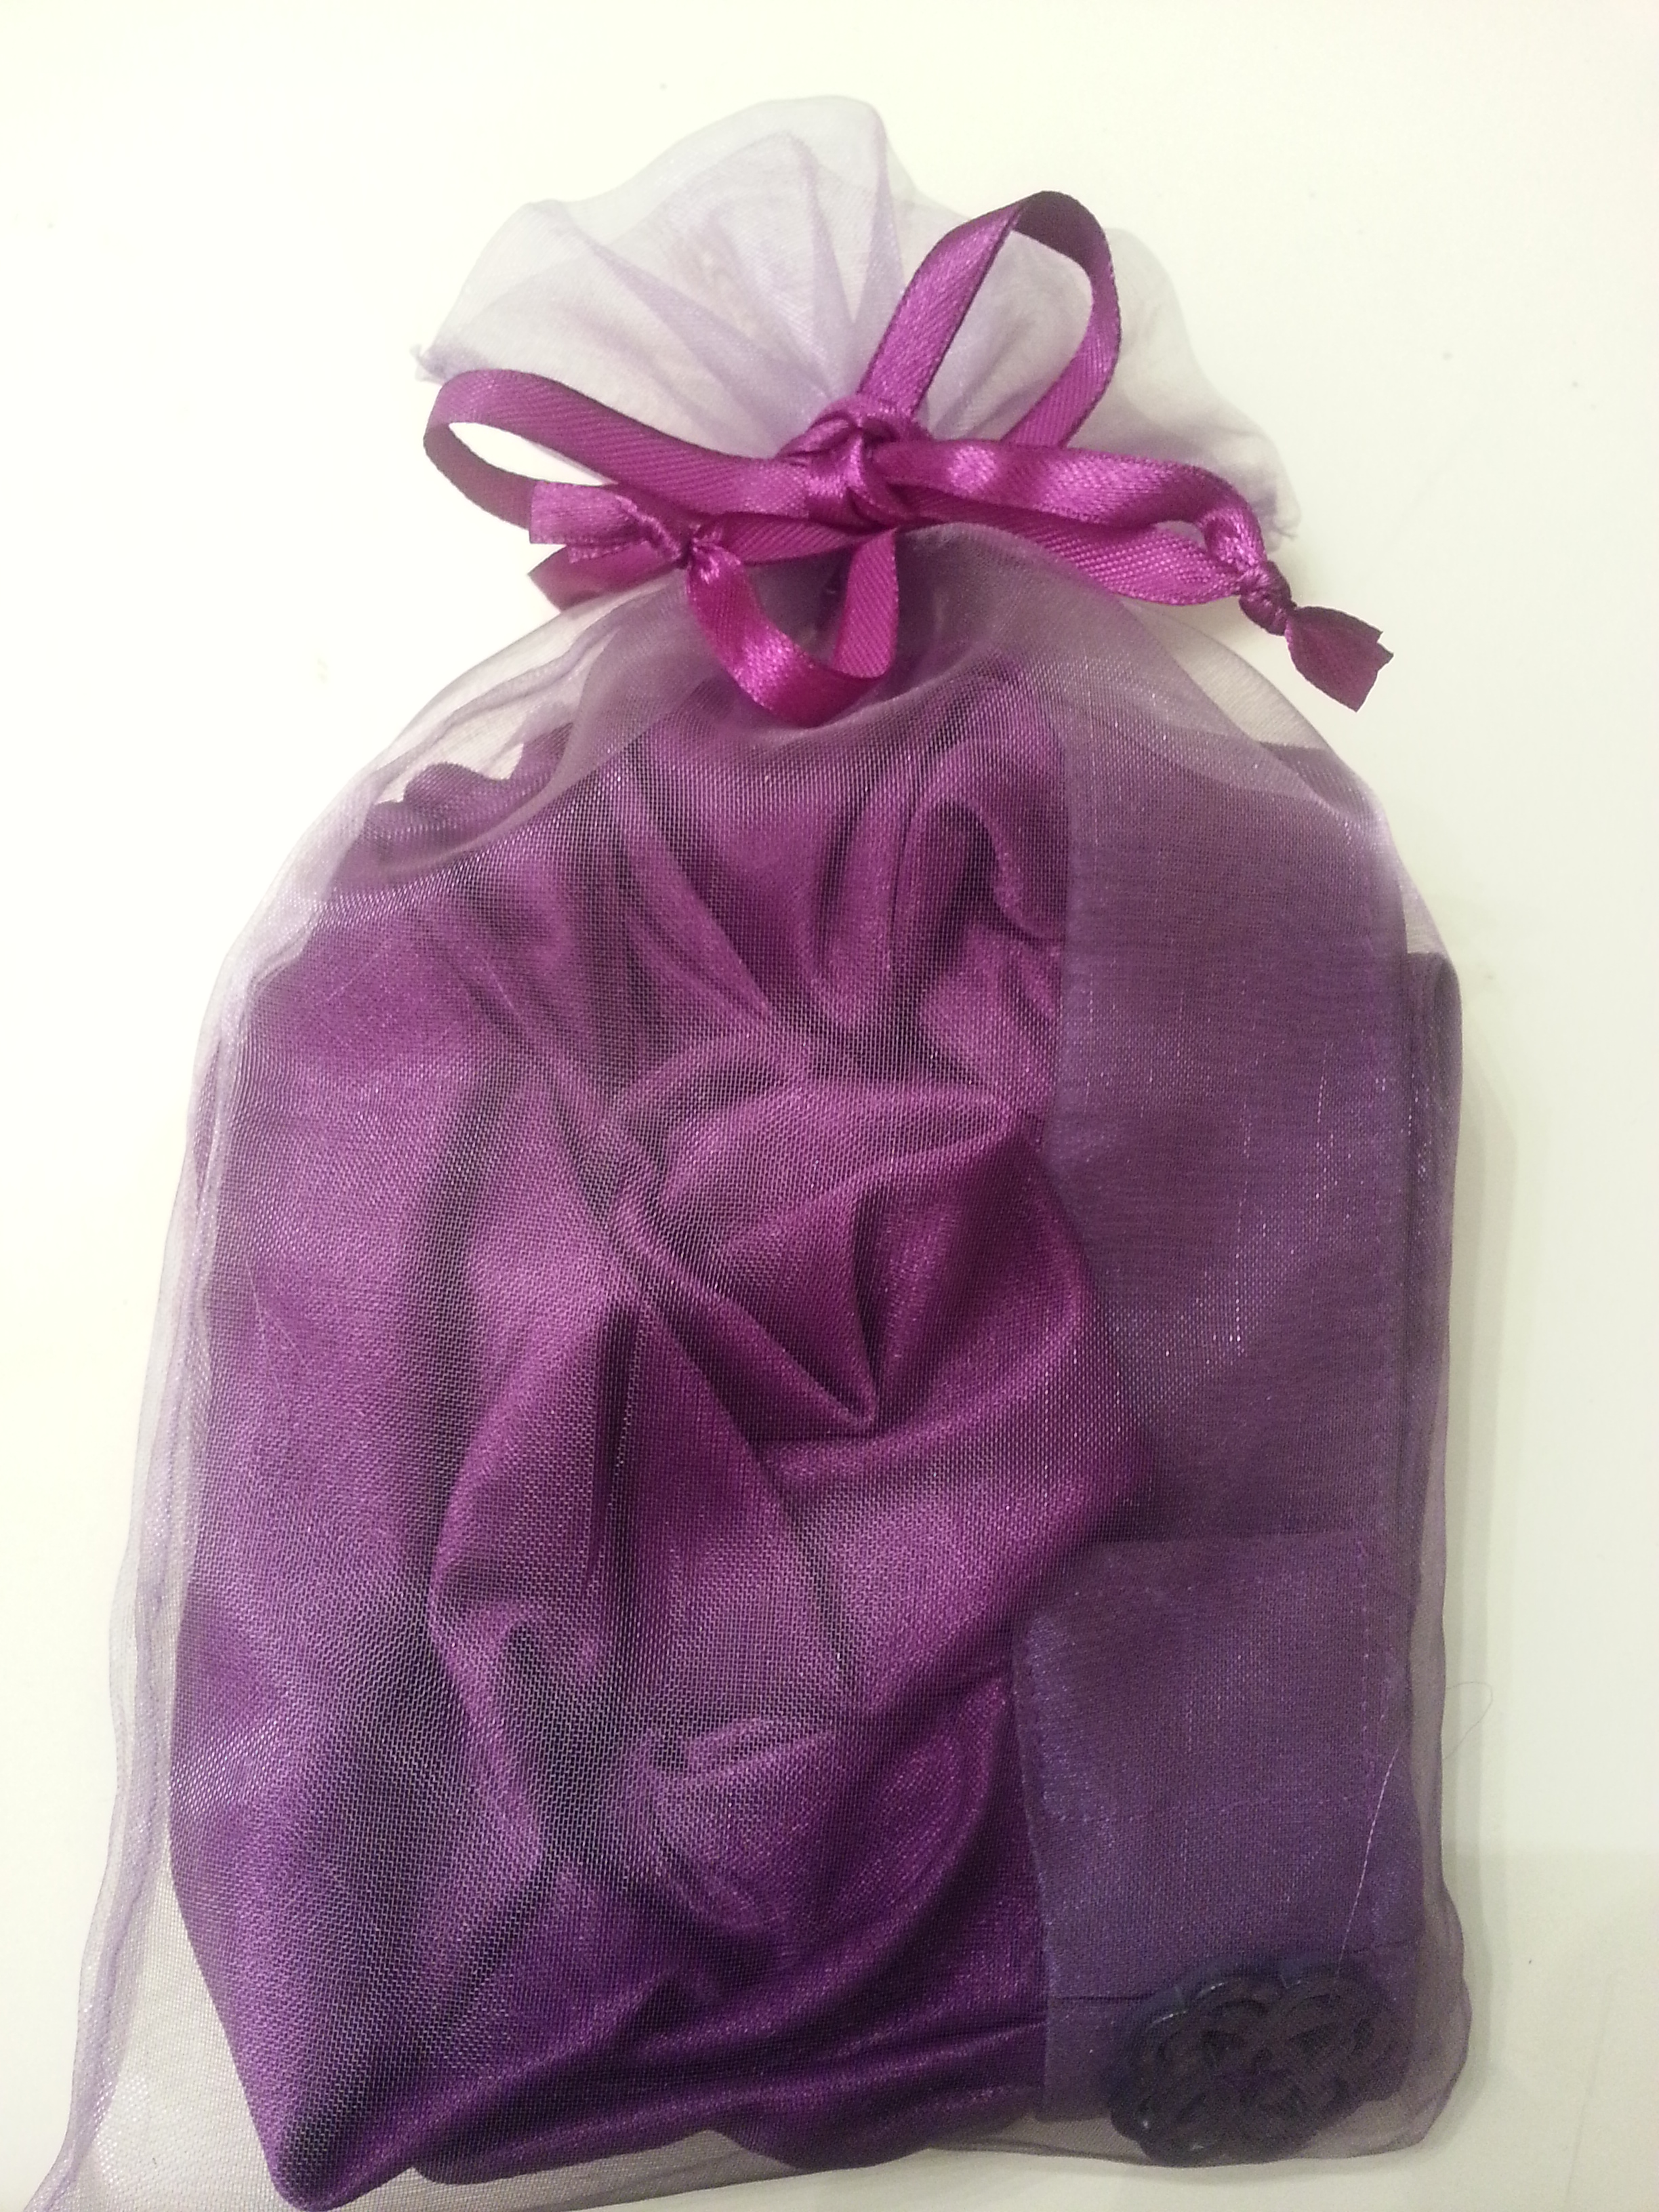 The wrap came in this pretty purple drawstring bag.